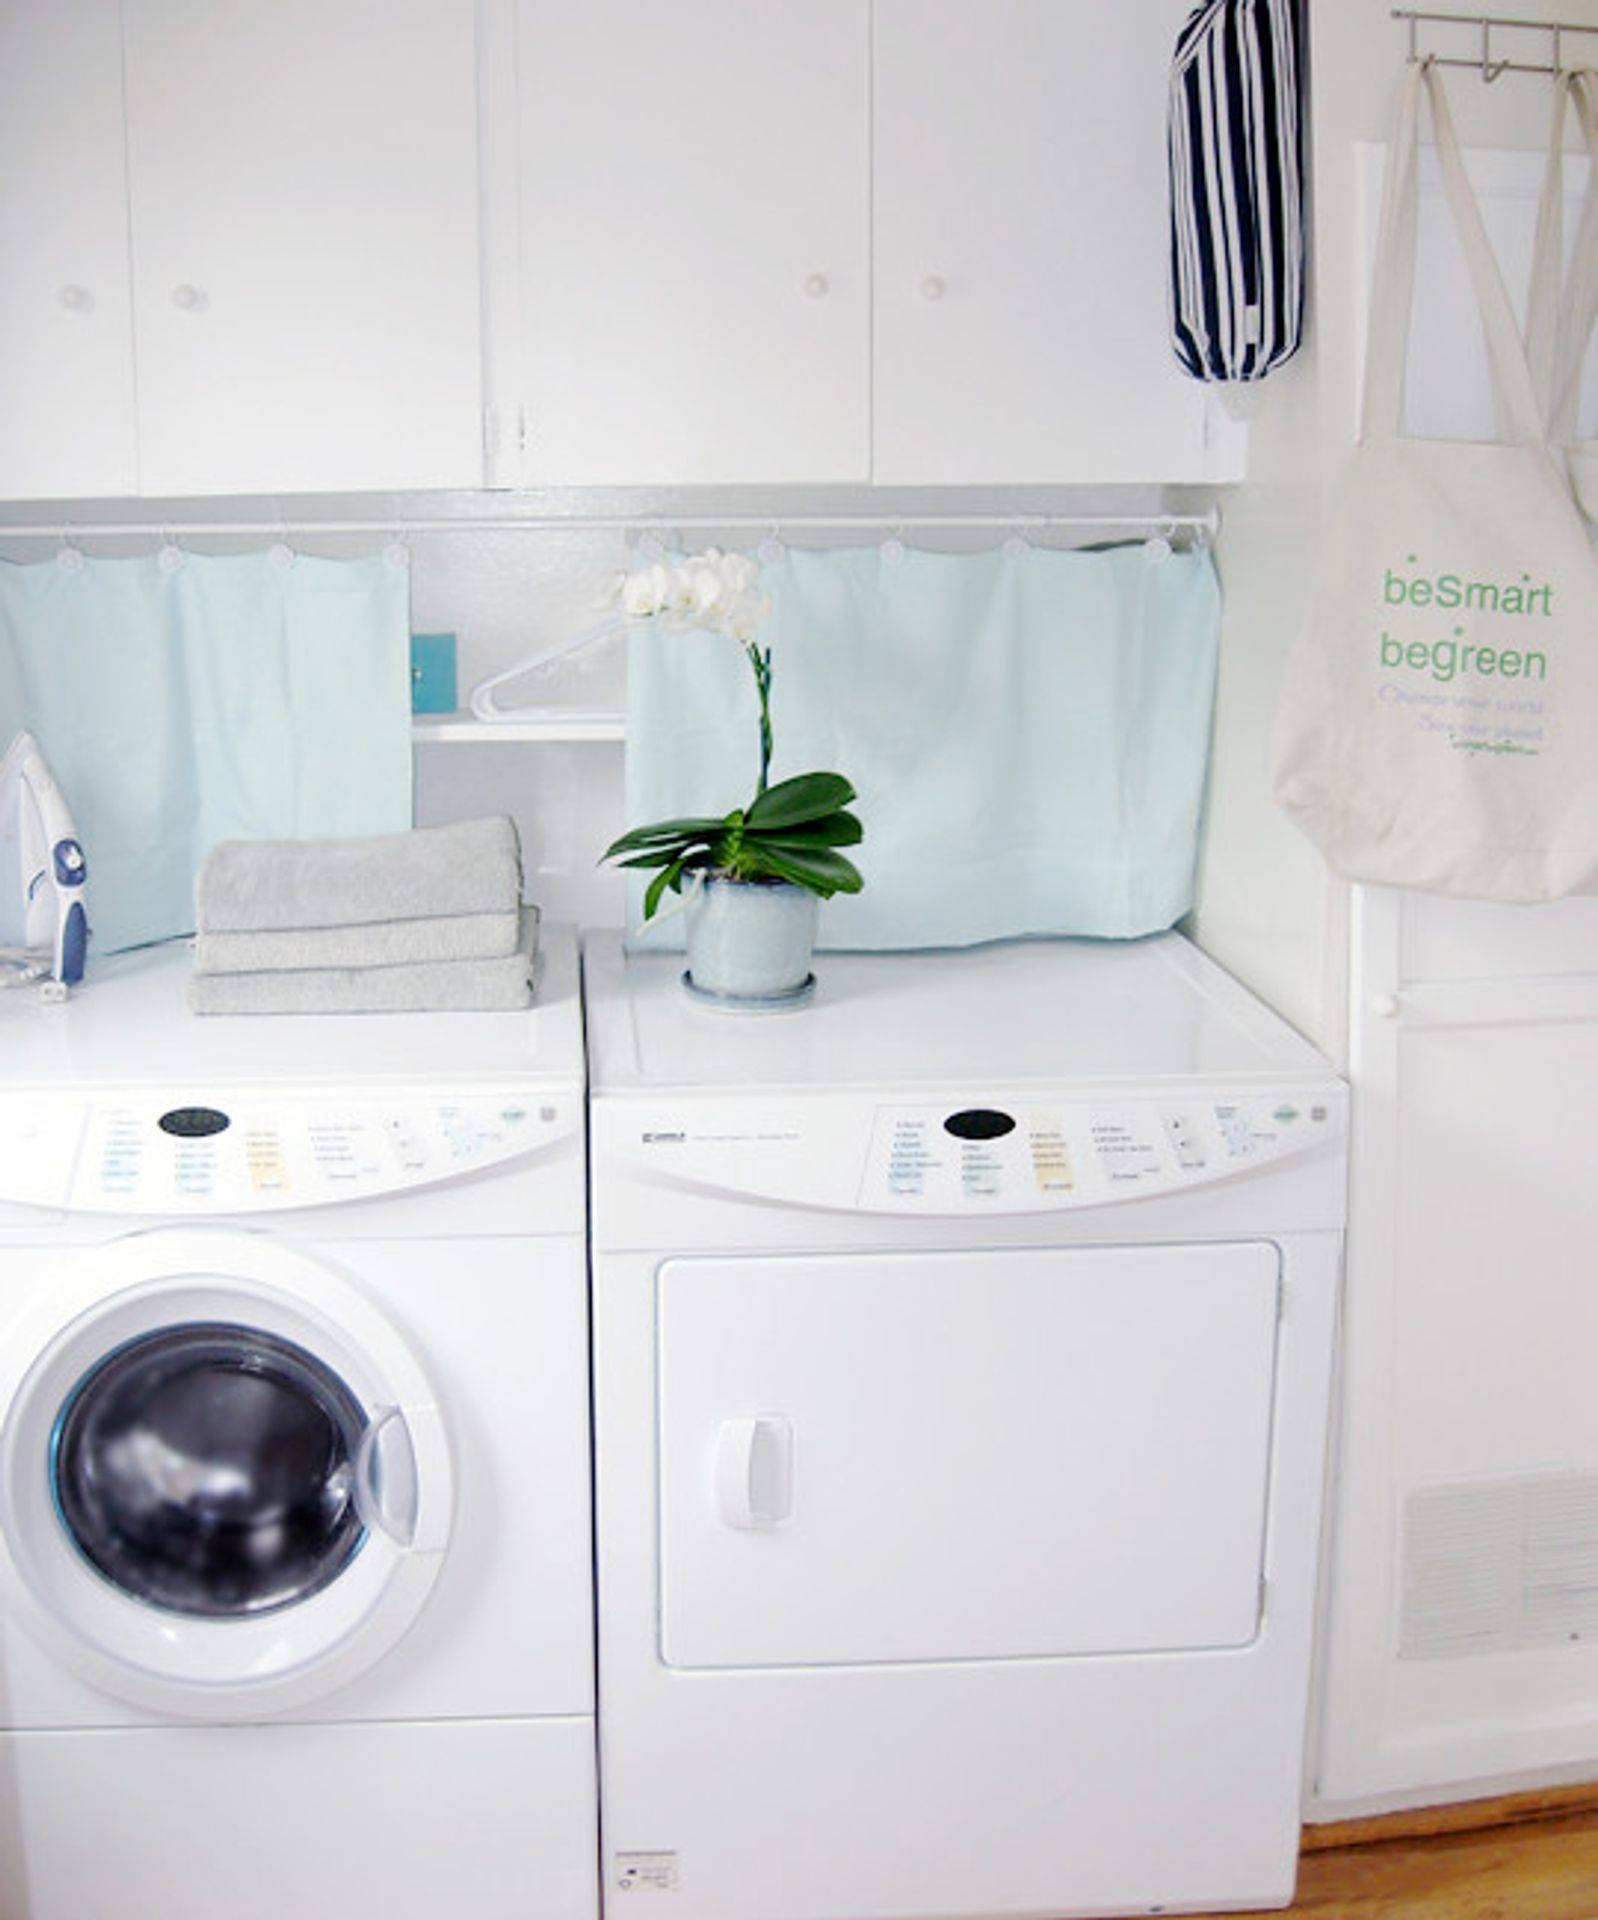 In-suite laundry rooms